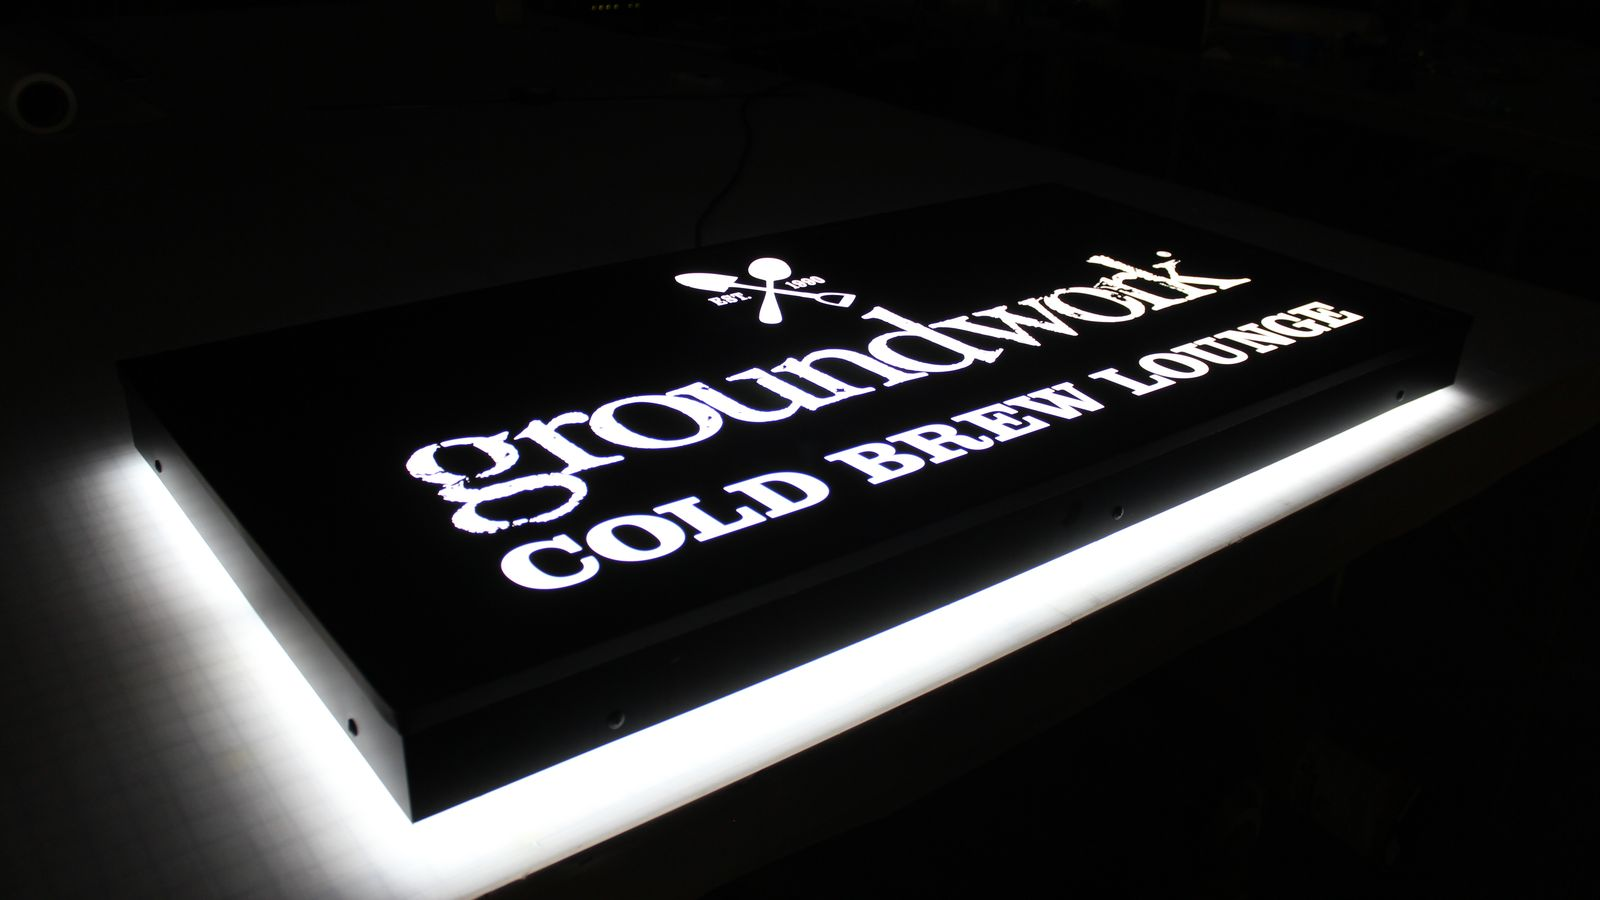 Groundwork Cold Brew Lounge LED light box with the company logo made of acrylic and aluminum for brand nighttime visibility